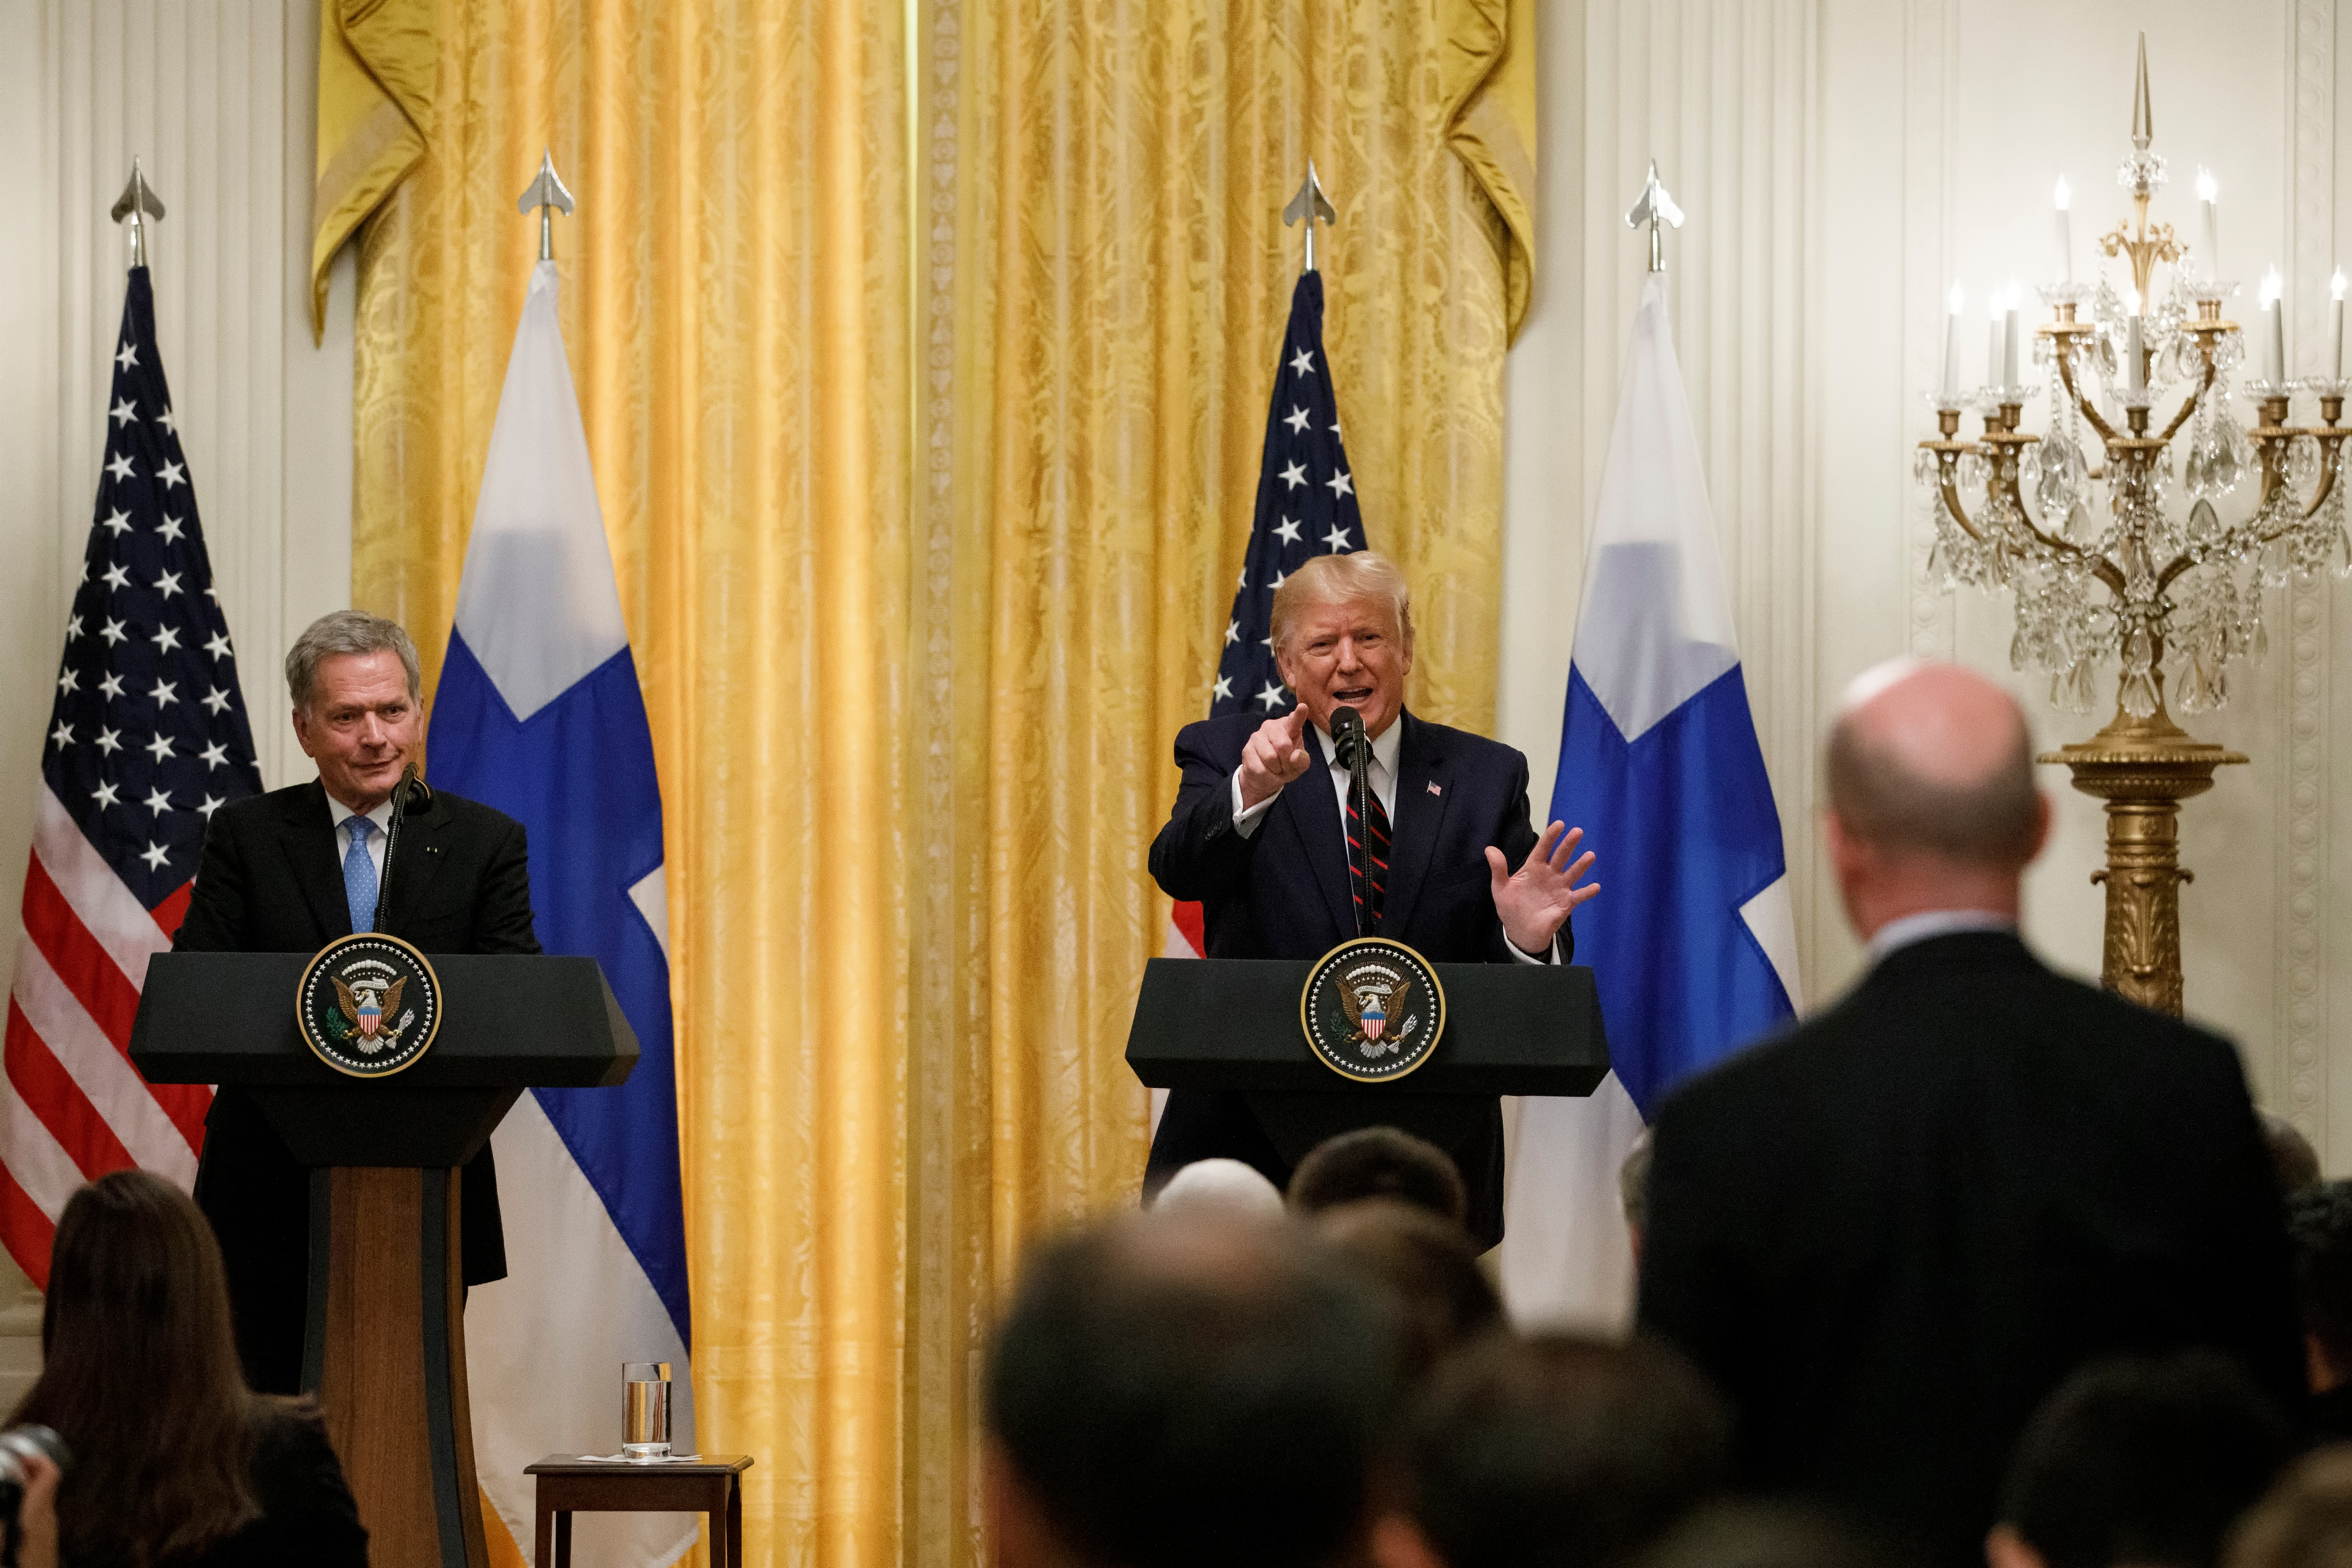 Trump holds joint news conference with Finland's president